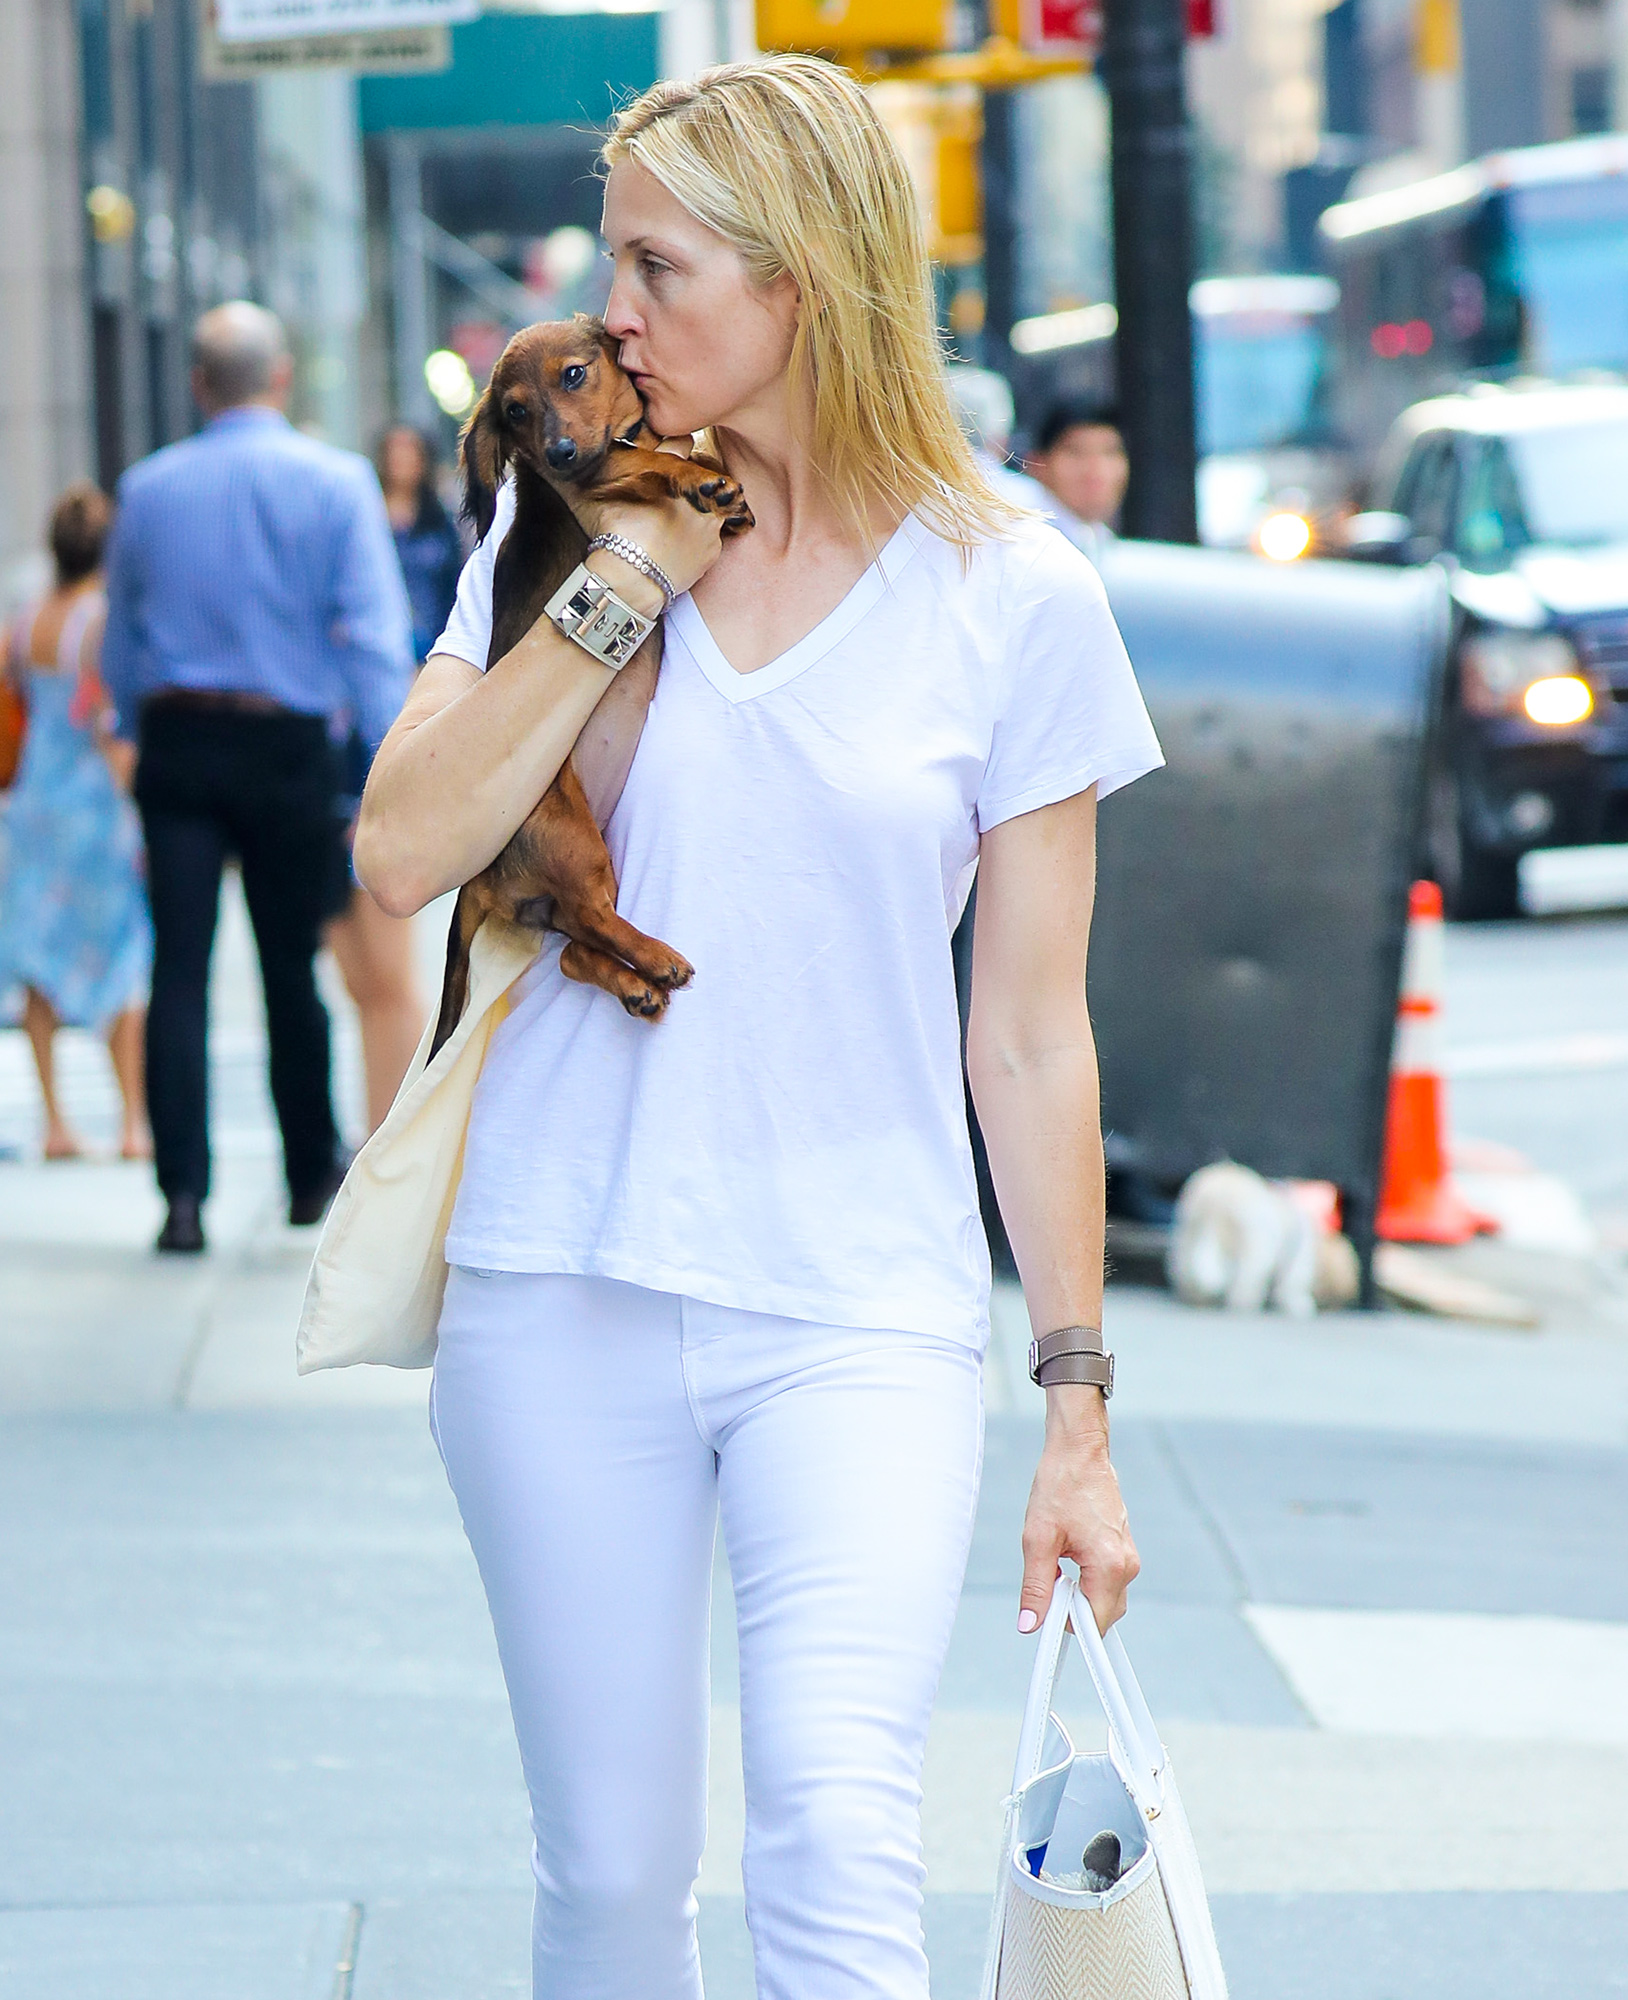 Kelly Rutherford is spotted carrying her puppy while strolling on Madison Avenue in New York City